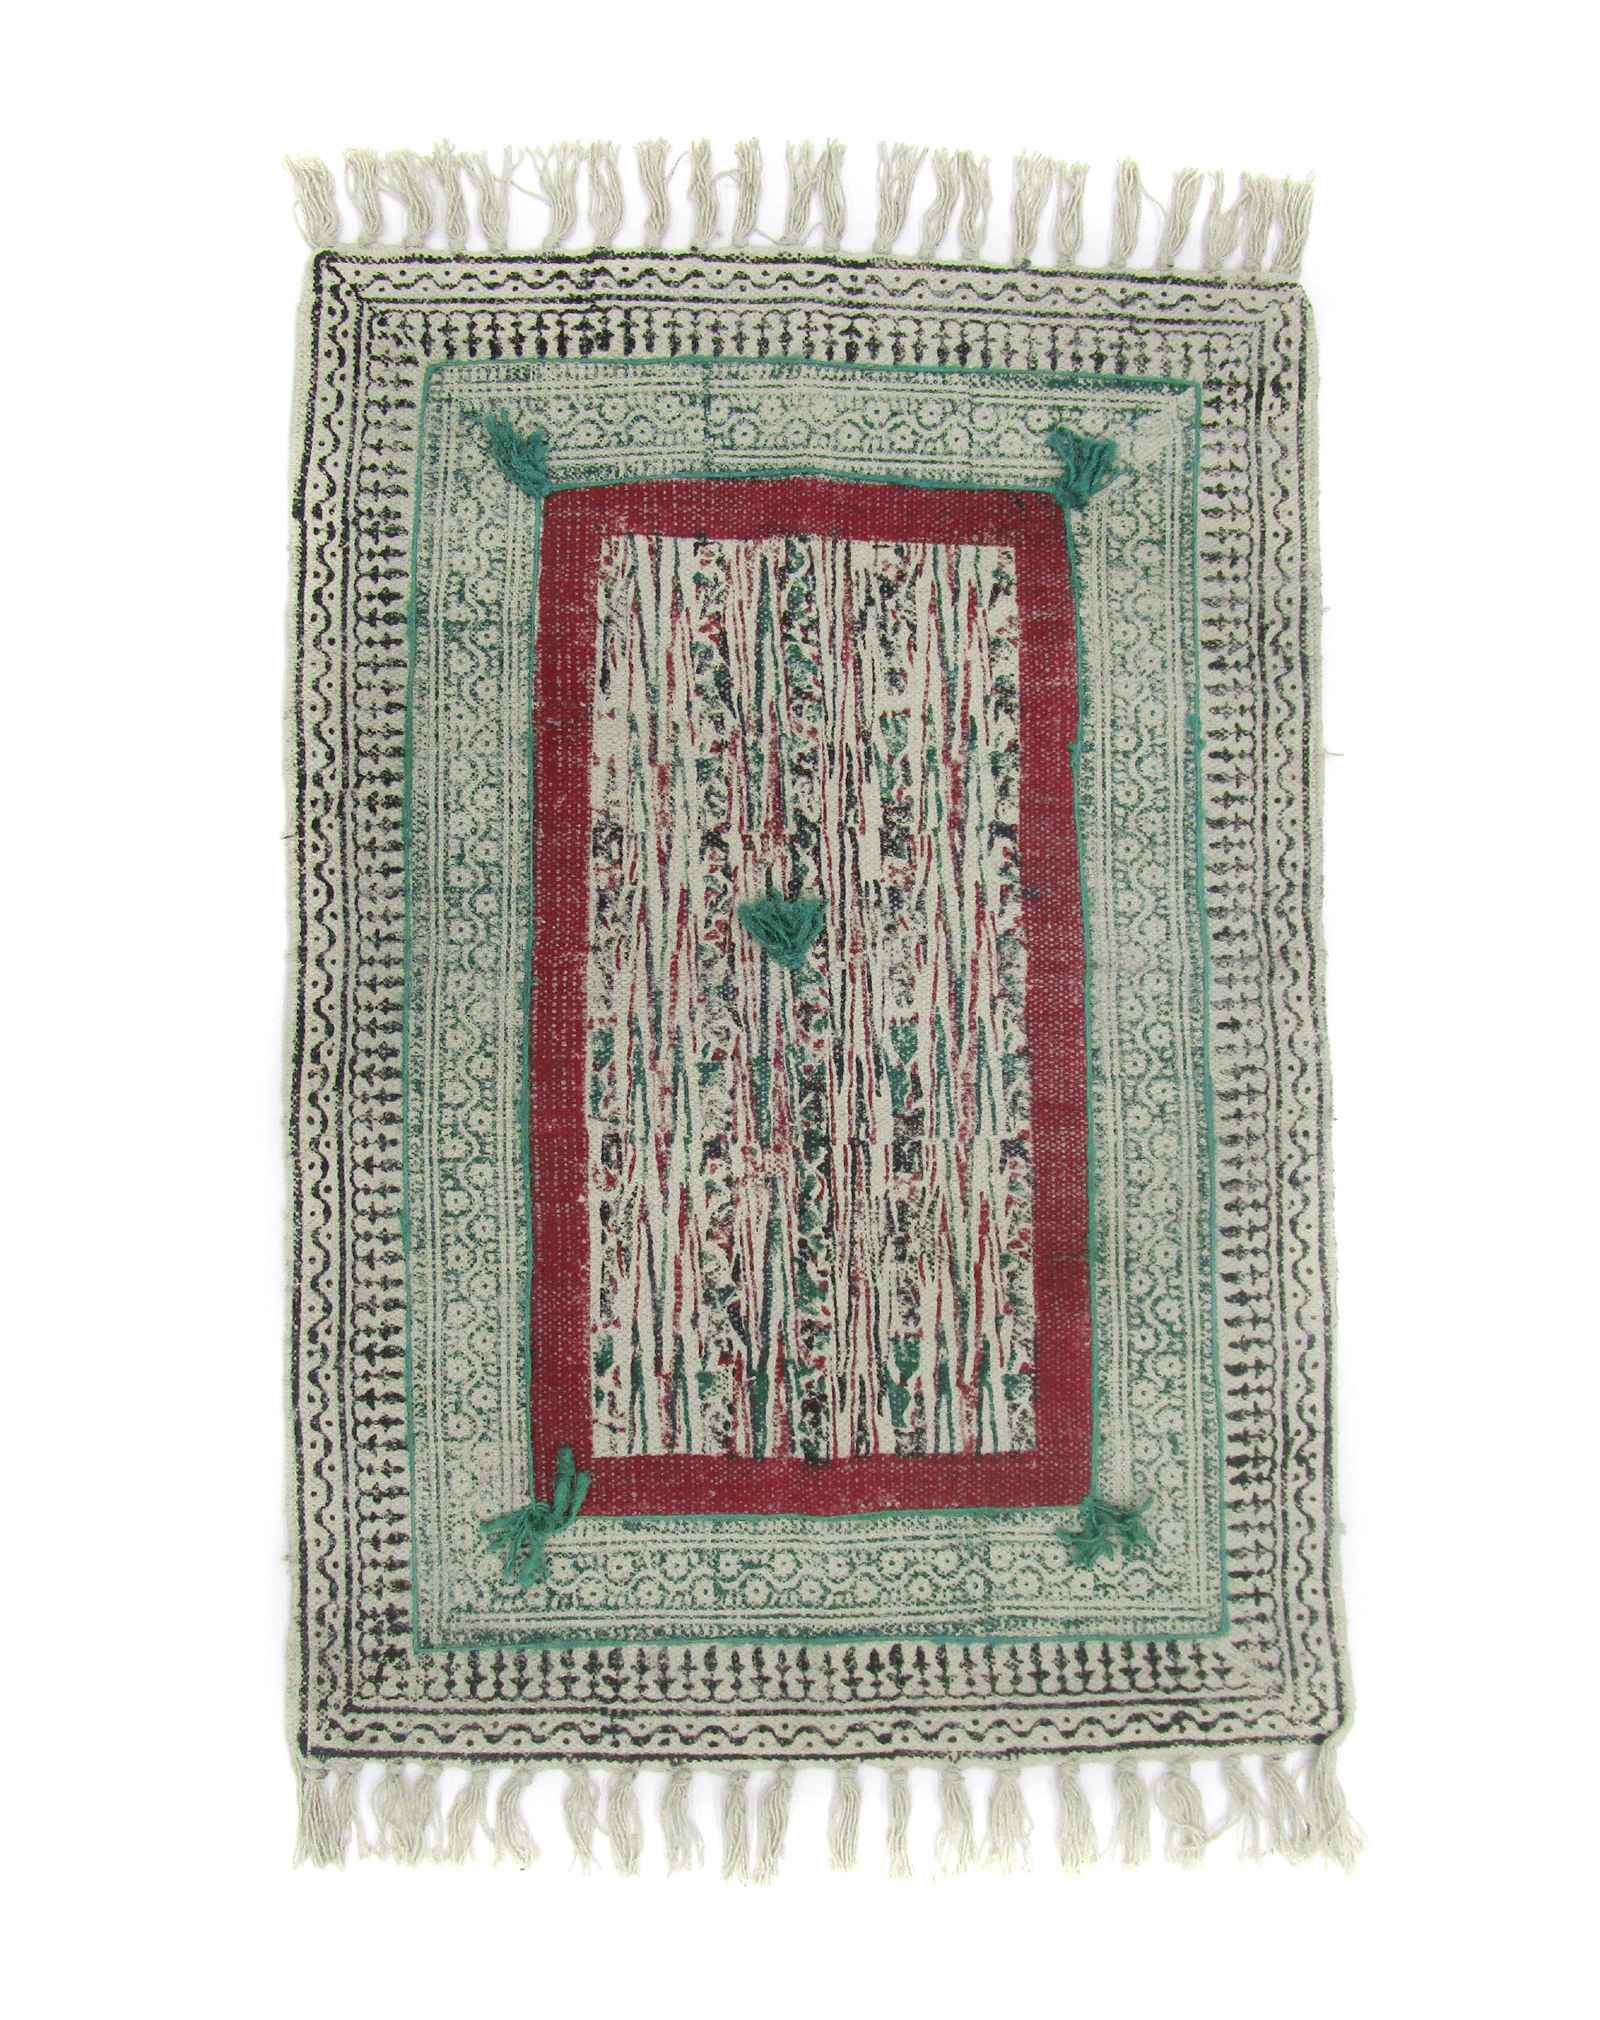 Cotton Embroidery Cotton Rug